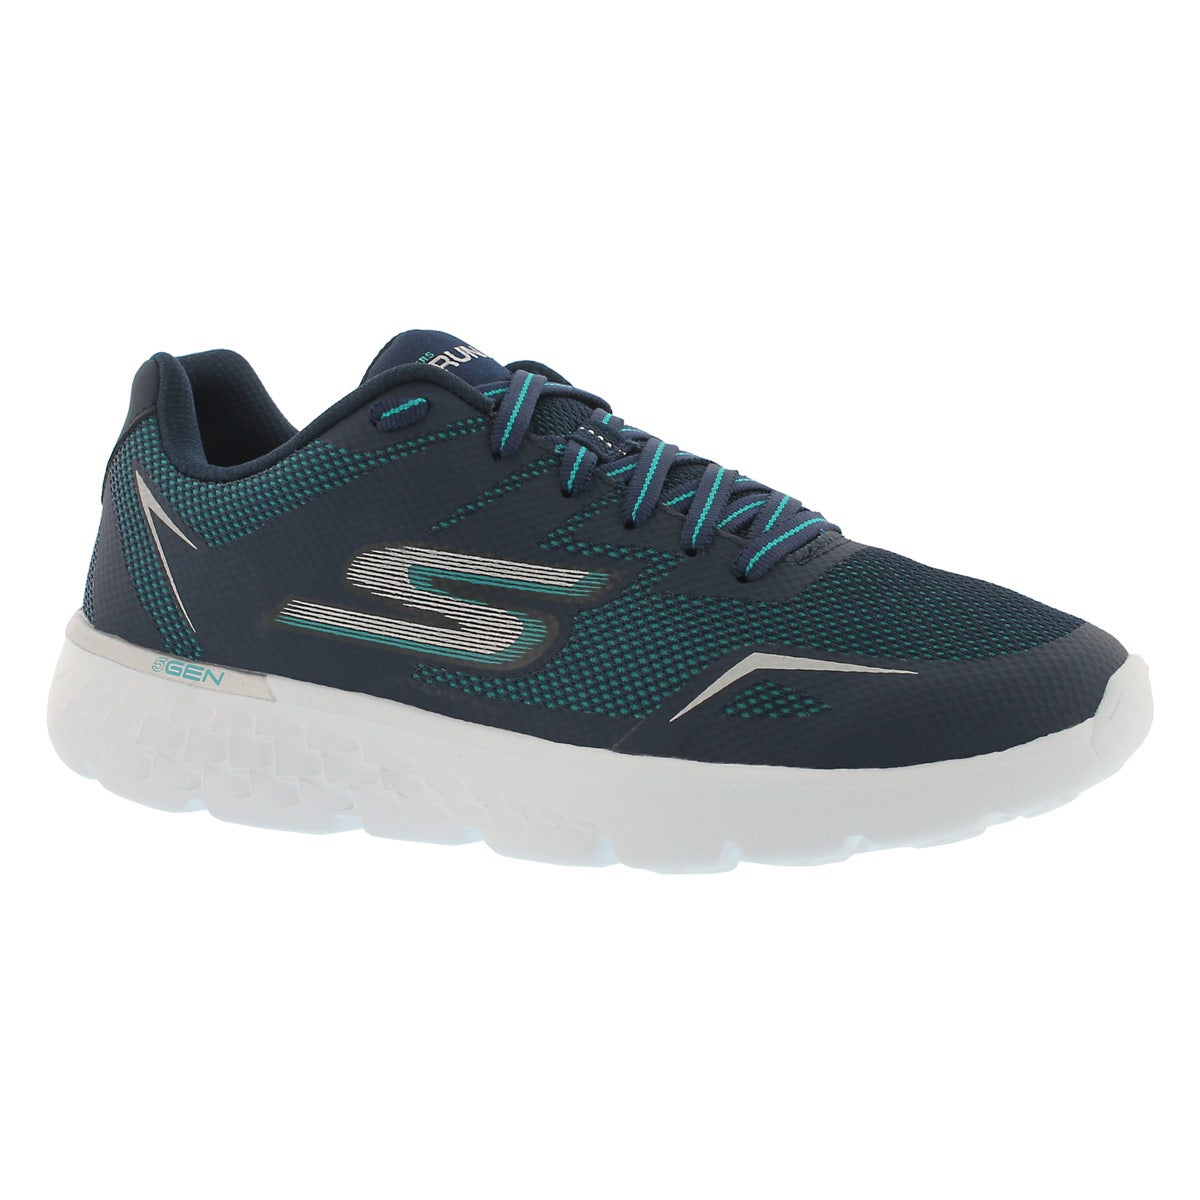 Women's GOrun 400 navy/aqua lace up sneakers